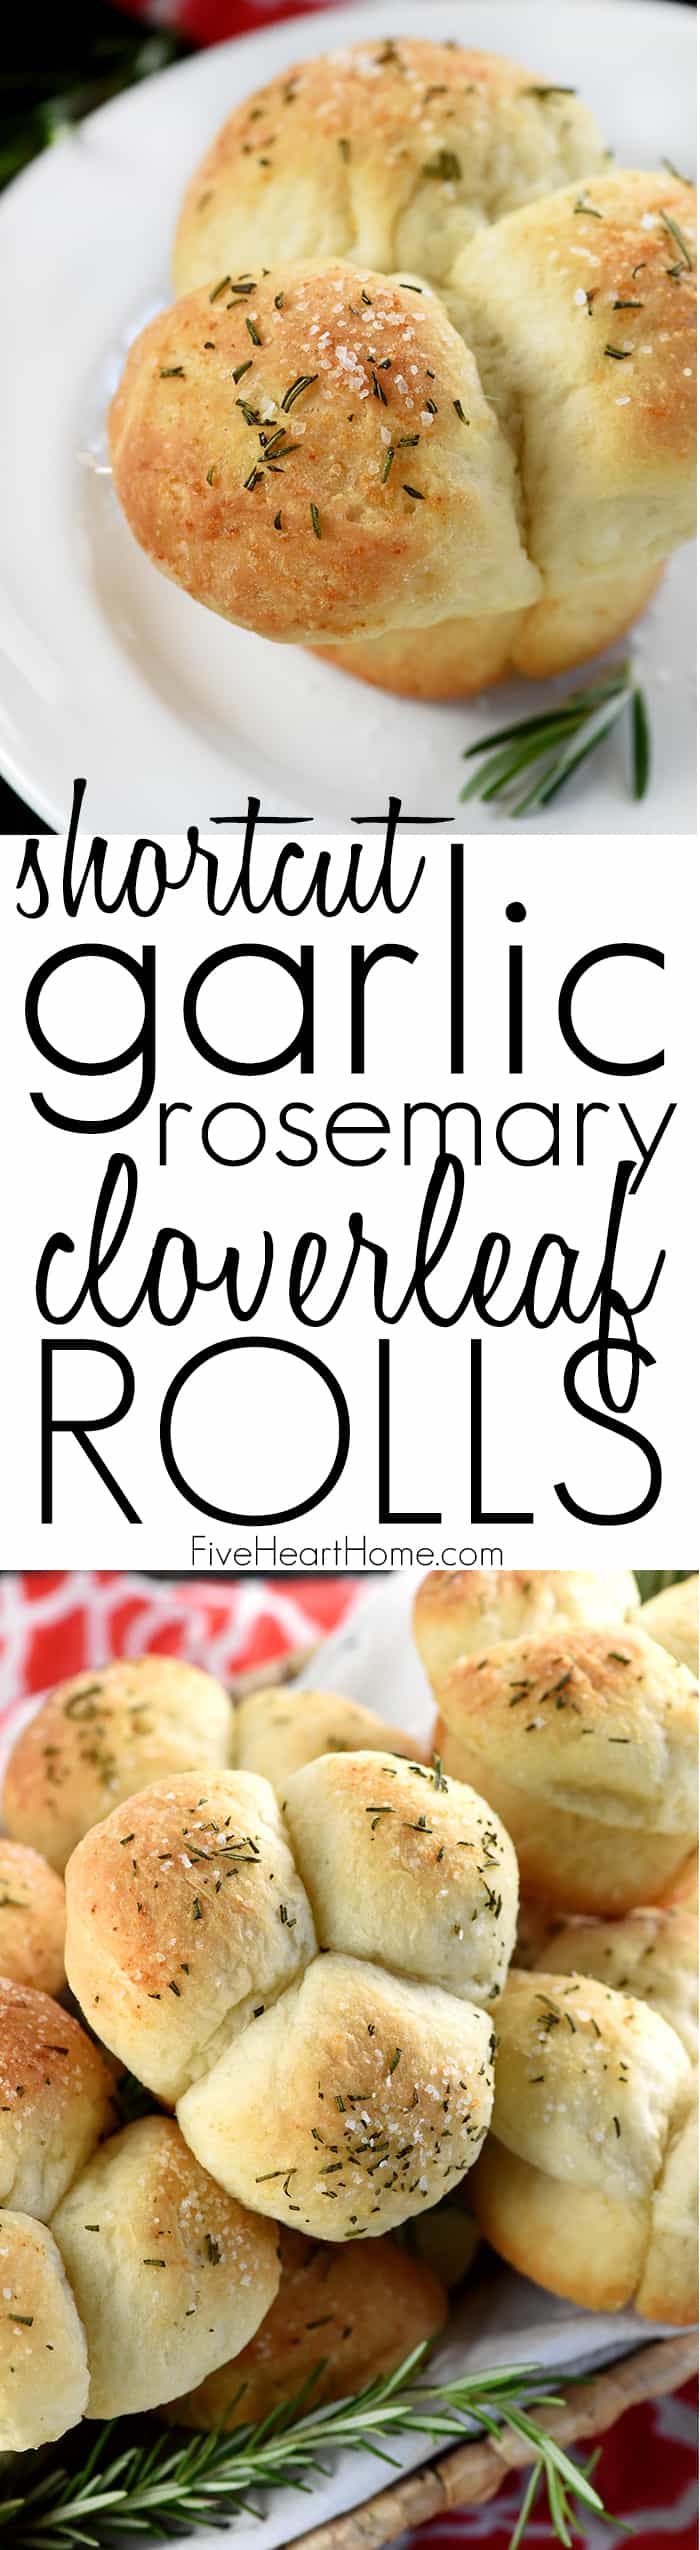 Quick Easy Garlic Rosemary Cloverleaf Dinner Rolls Fivehearthome